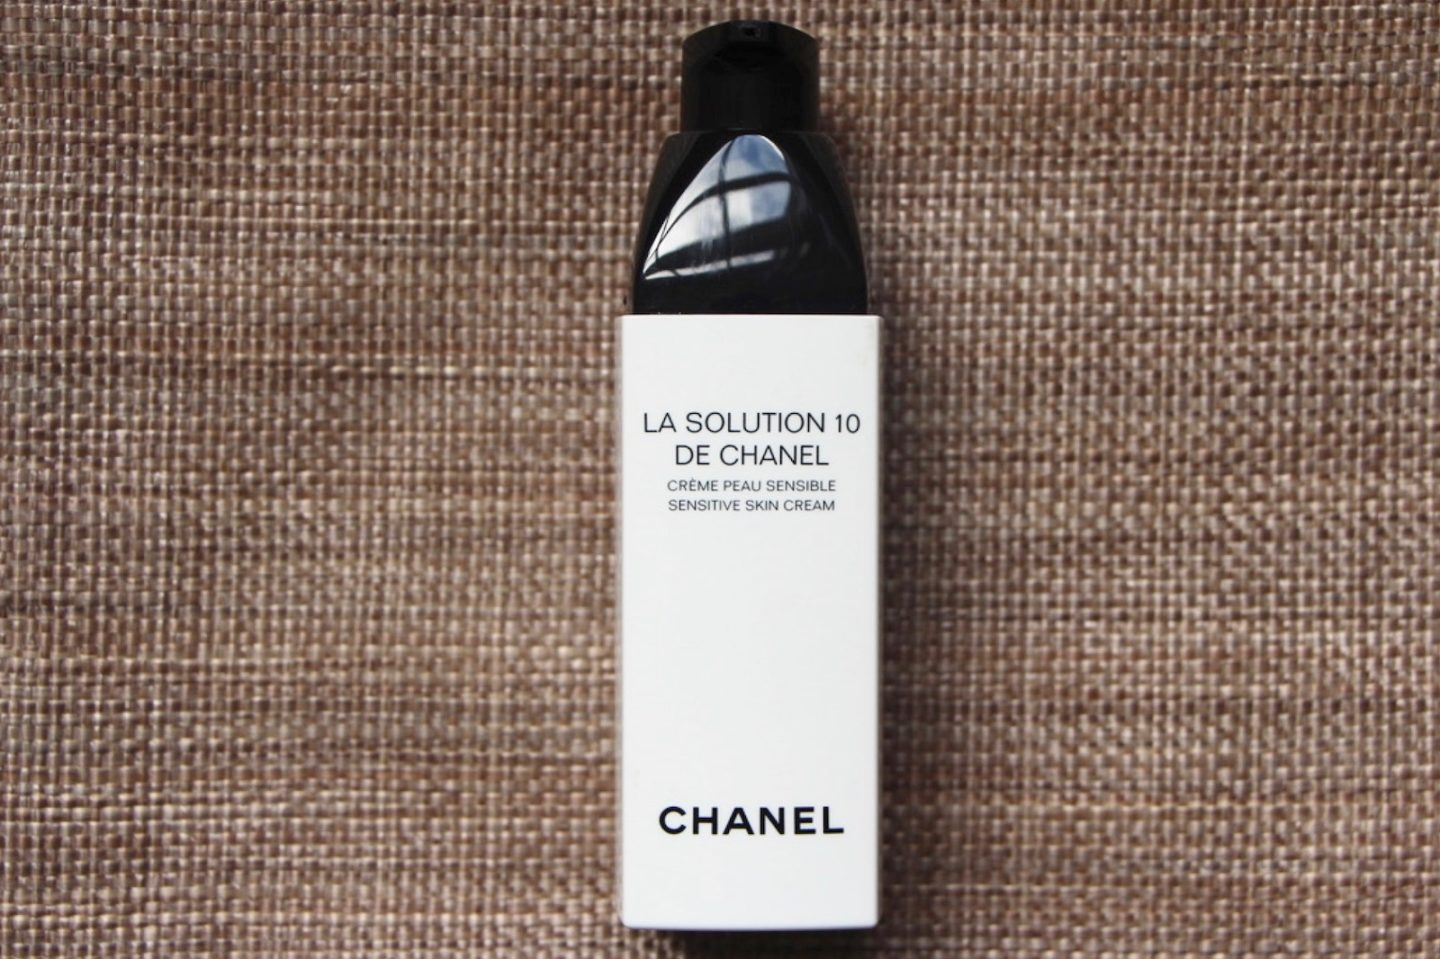 Skincare Review: La Solution 10 De Chanel